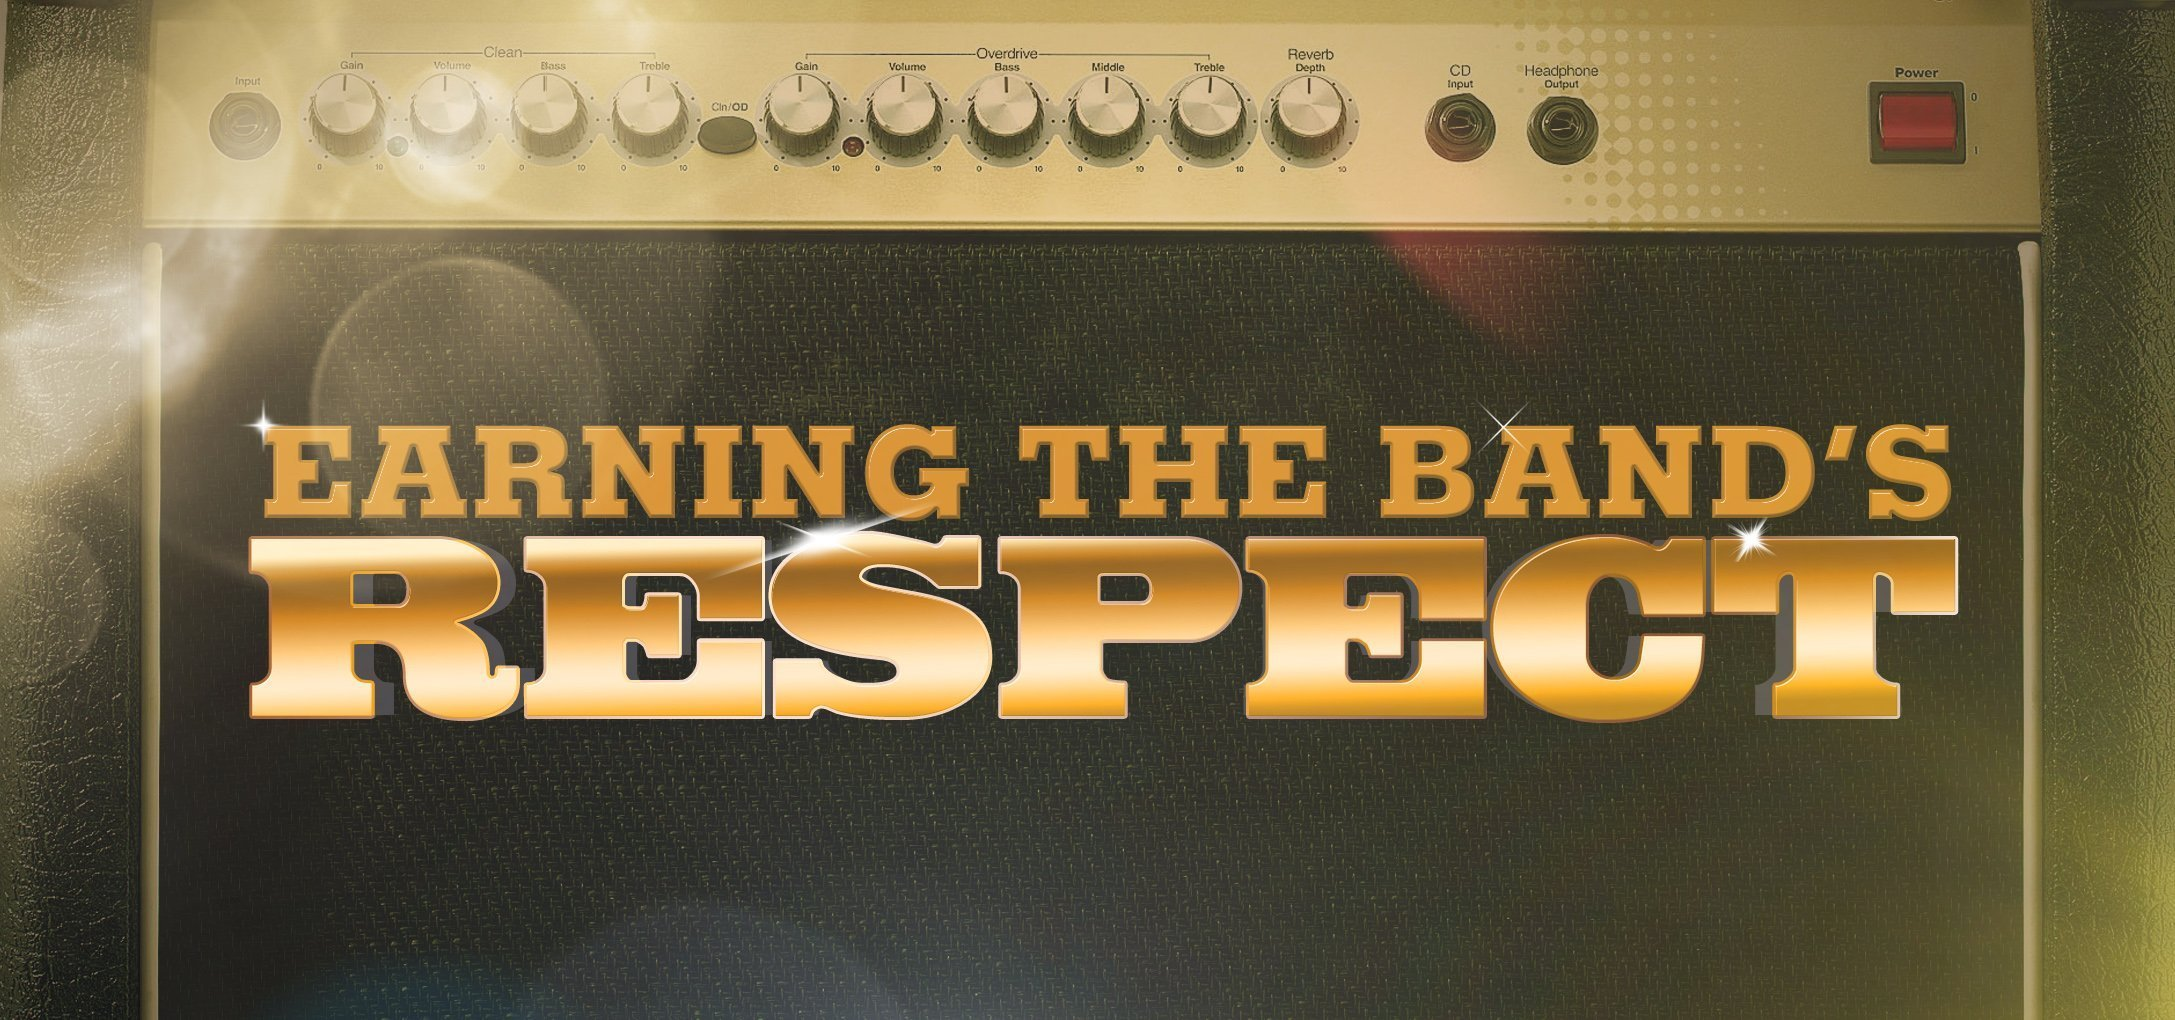 Earning the Band's Respect